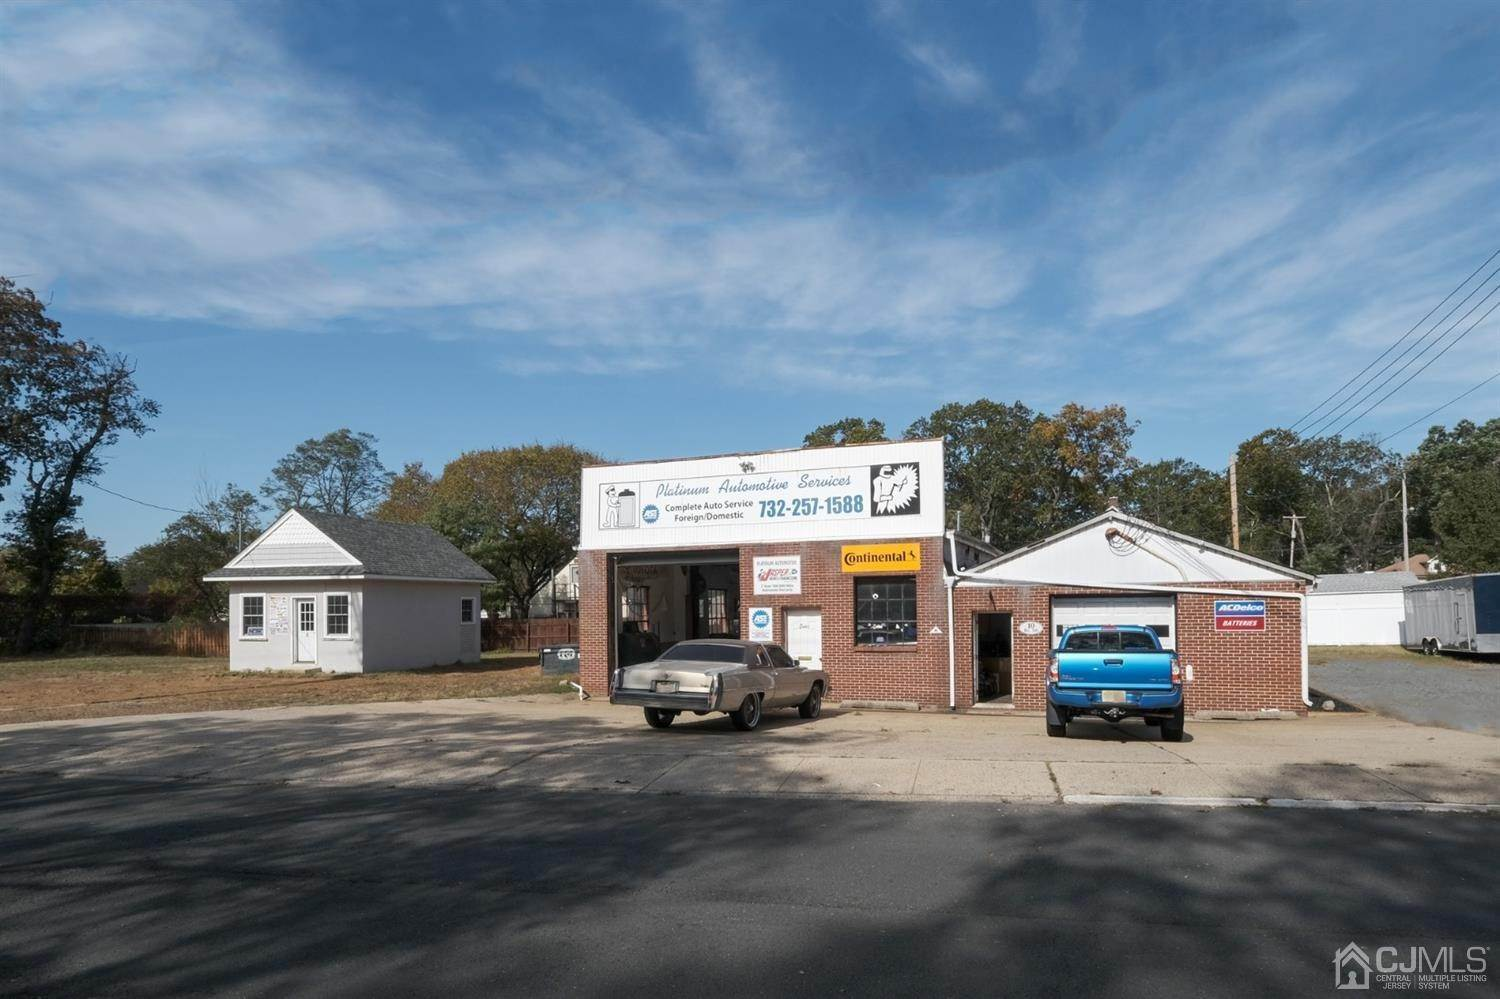 Commercial for Sale at Old Bridge, New Jersey 08857 United States